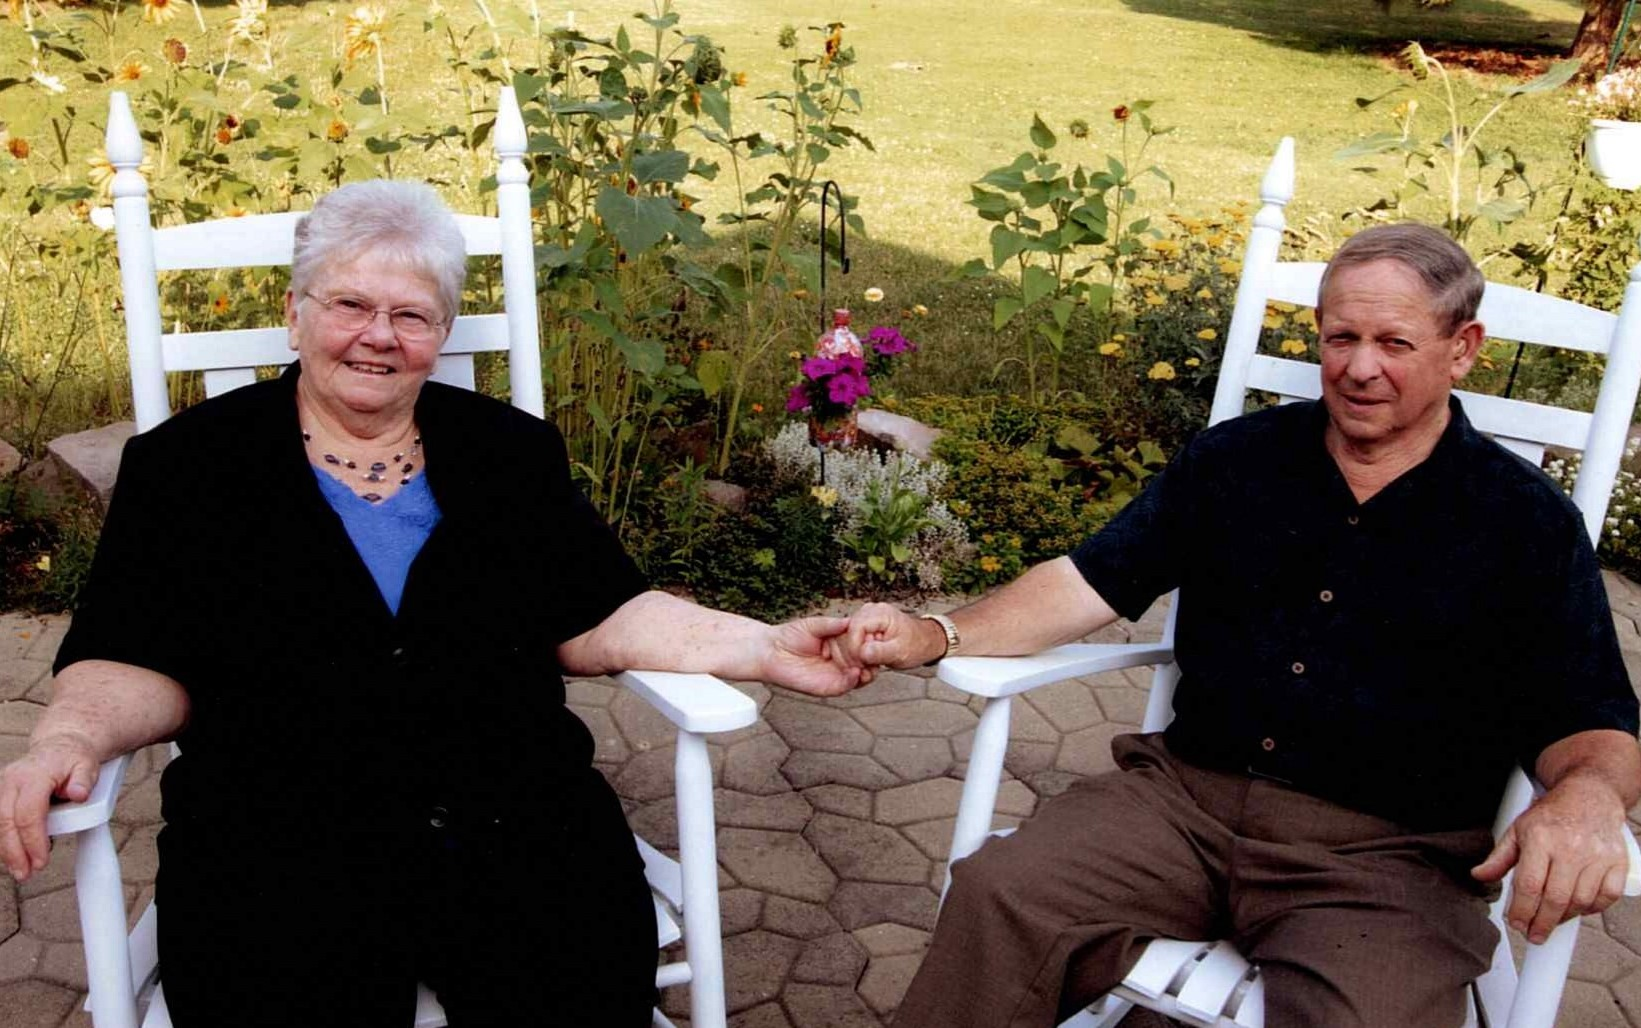 Neil and Elizabeth Sitting together in the garden